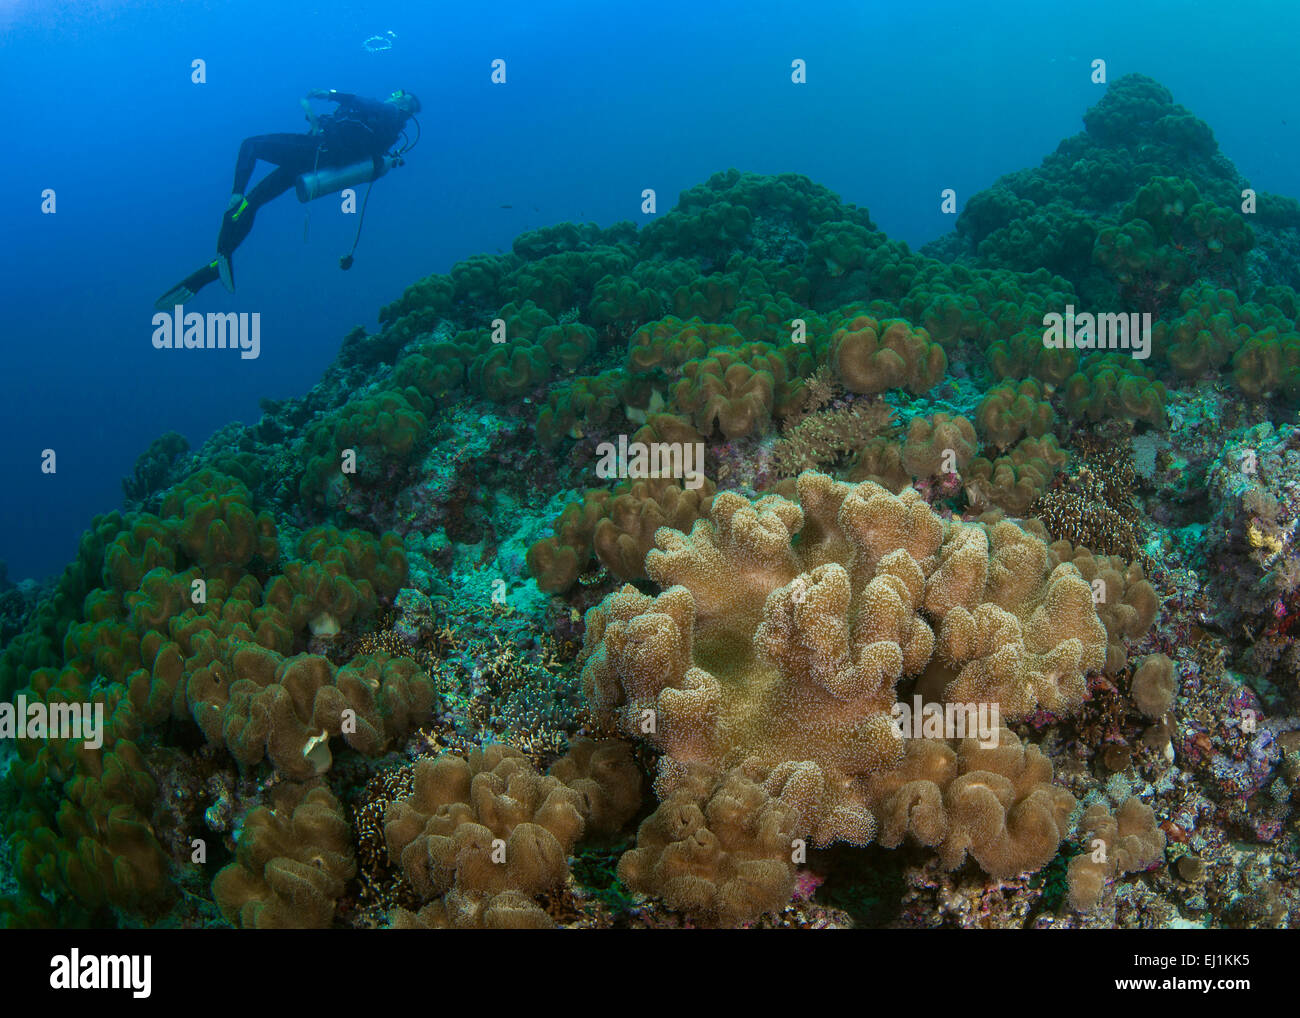 Reef innundated with toadstool leather coral (Sacrophyton sp.); Scuba diver in background blows bubble rings. Spratly - Stock Image